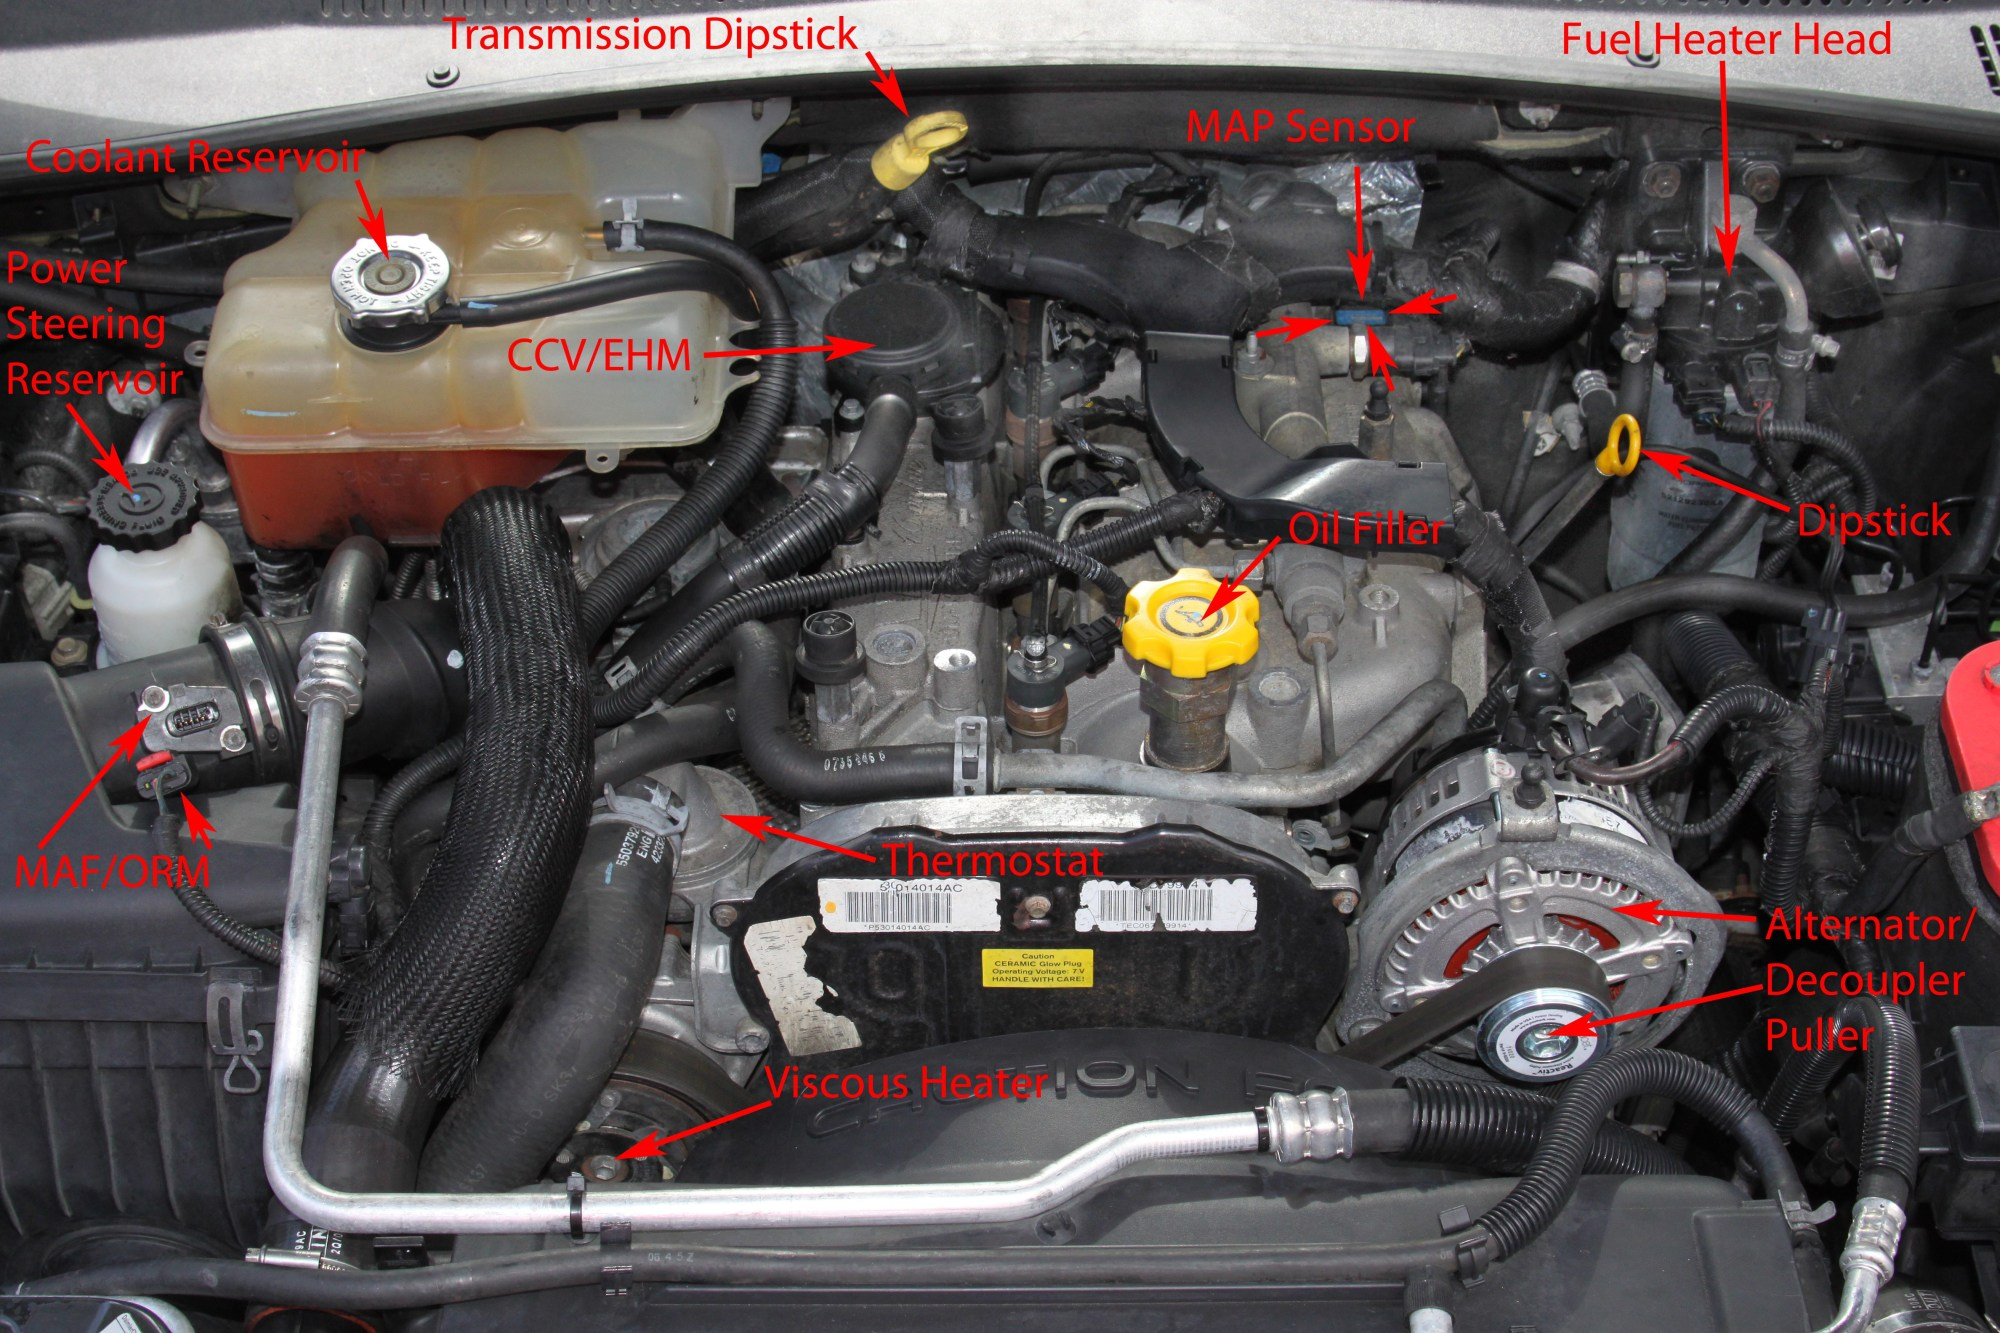 hight resolution of 2006 jeep liberty engine diagram wiring diagram sheet 2003 jeep liberty engine diagram jeep liberty engine diagram